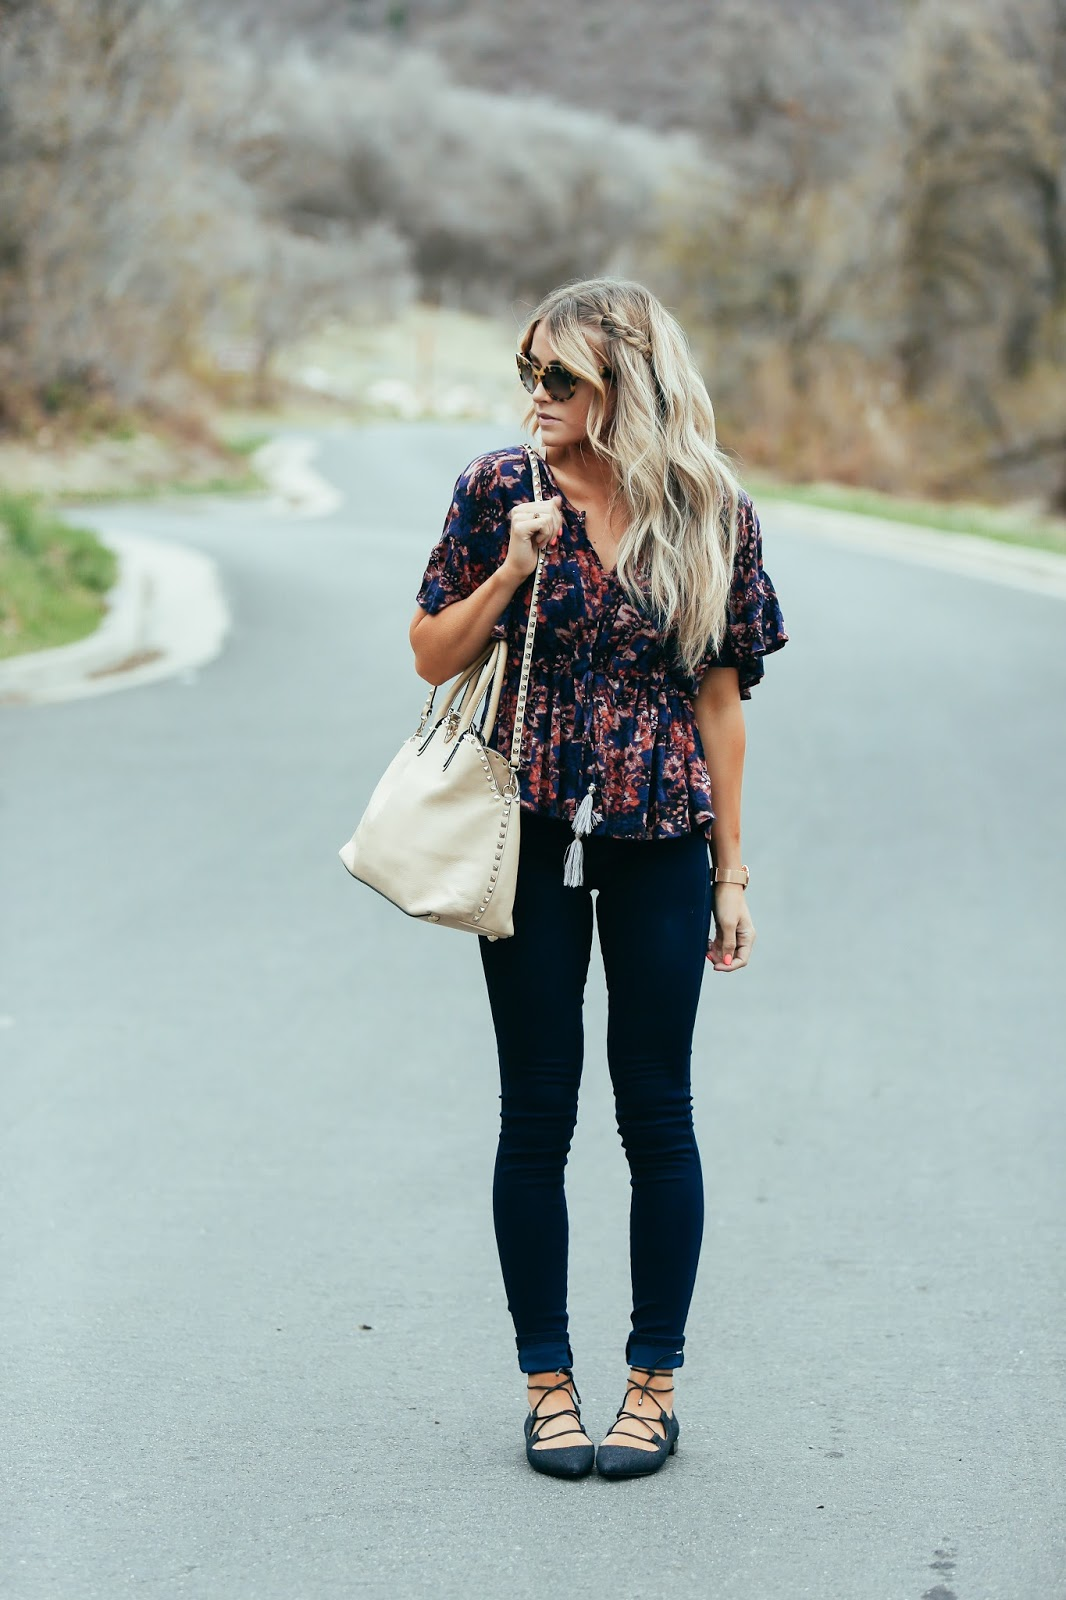 105 Spring Outfits To Give You That Edge You Crave - Just The Design